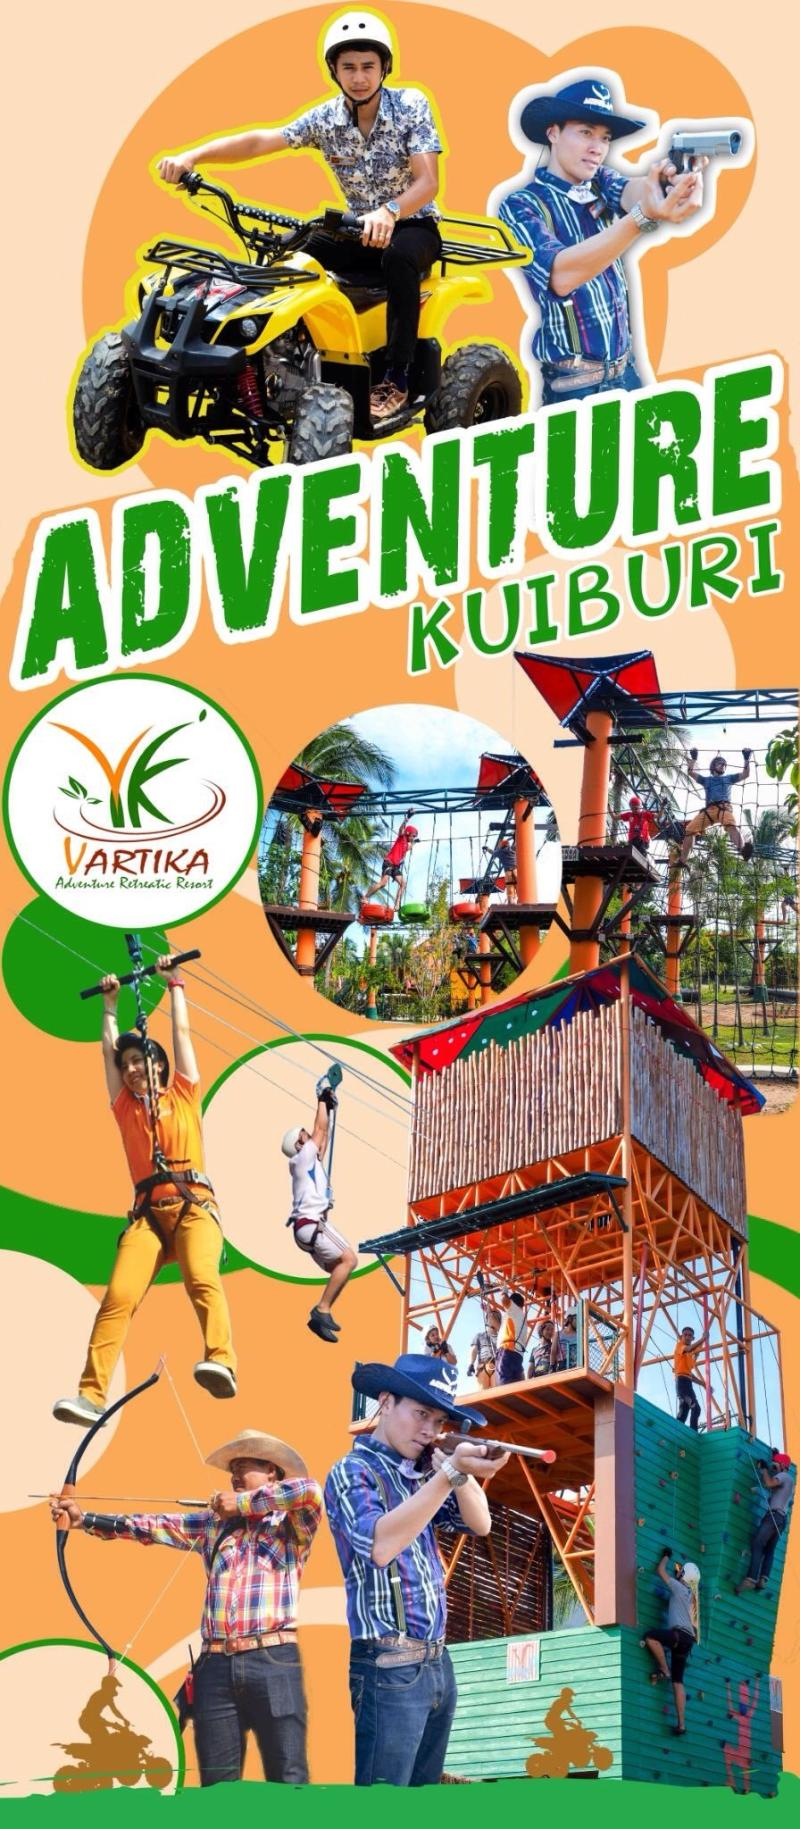 Vartika Adventure Retreatic Resort